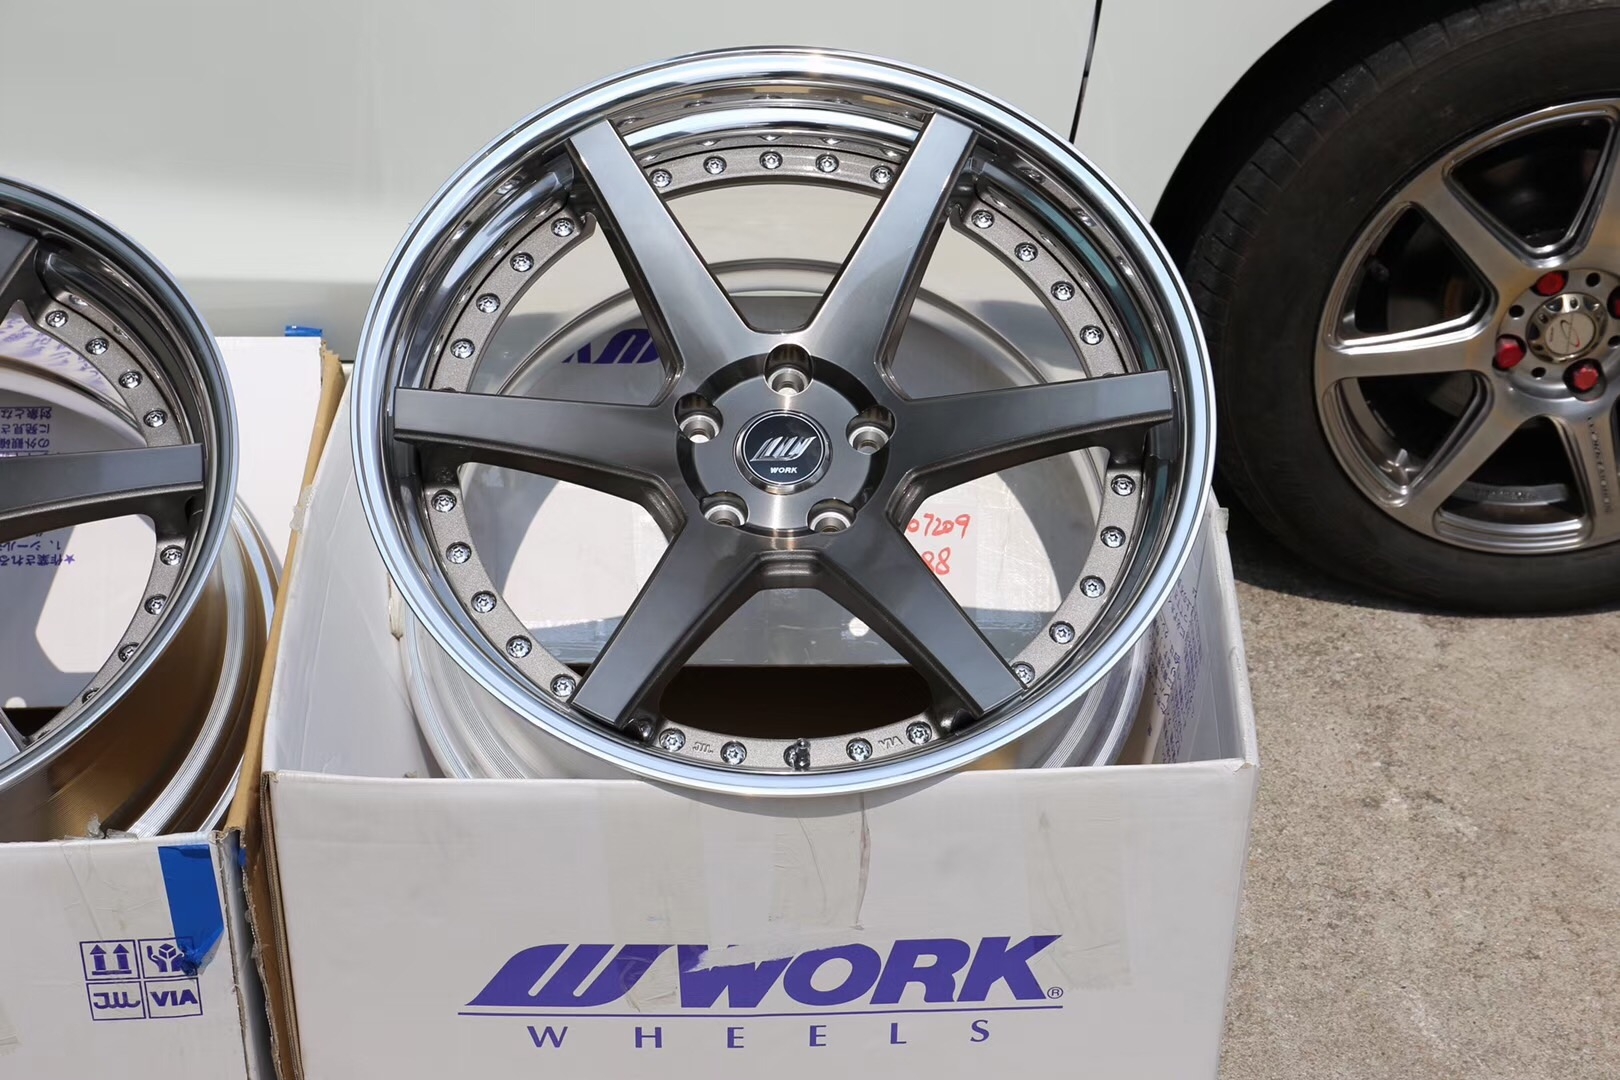 M-power and Work Wheels